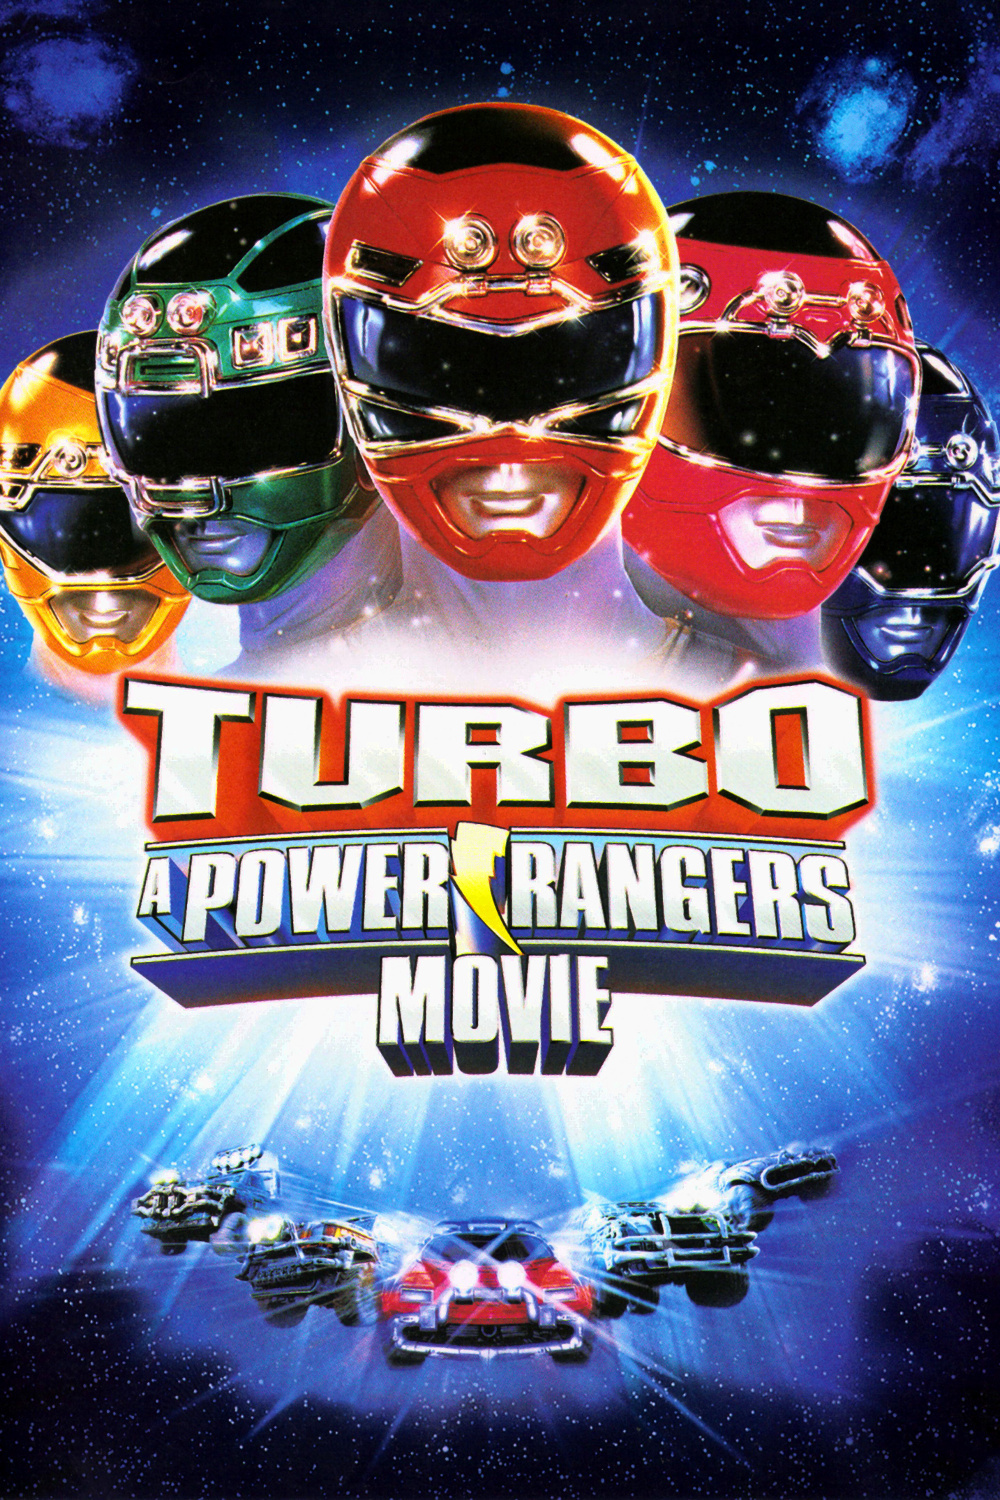 toys super hero at the movies 13 turbo a power rangers movie. Black Bedroom Furniture Sets. Home Design Ideas